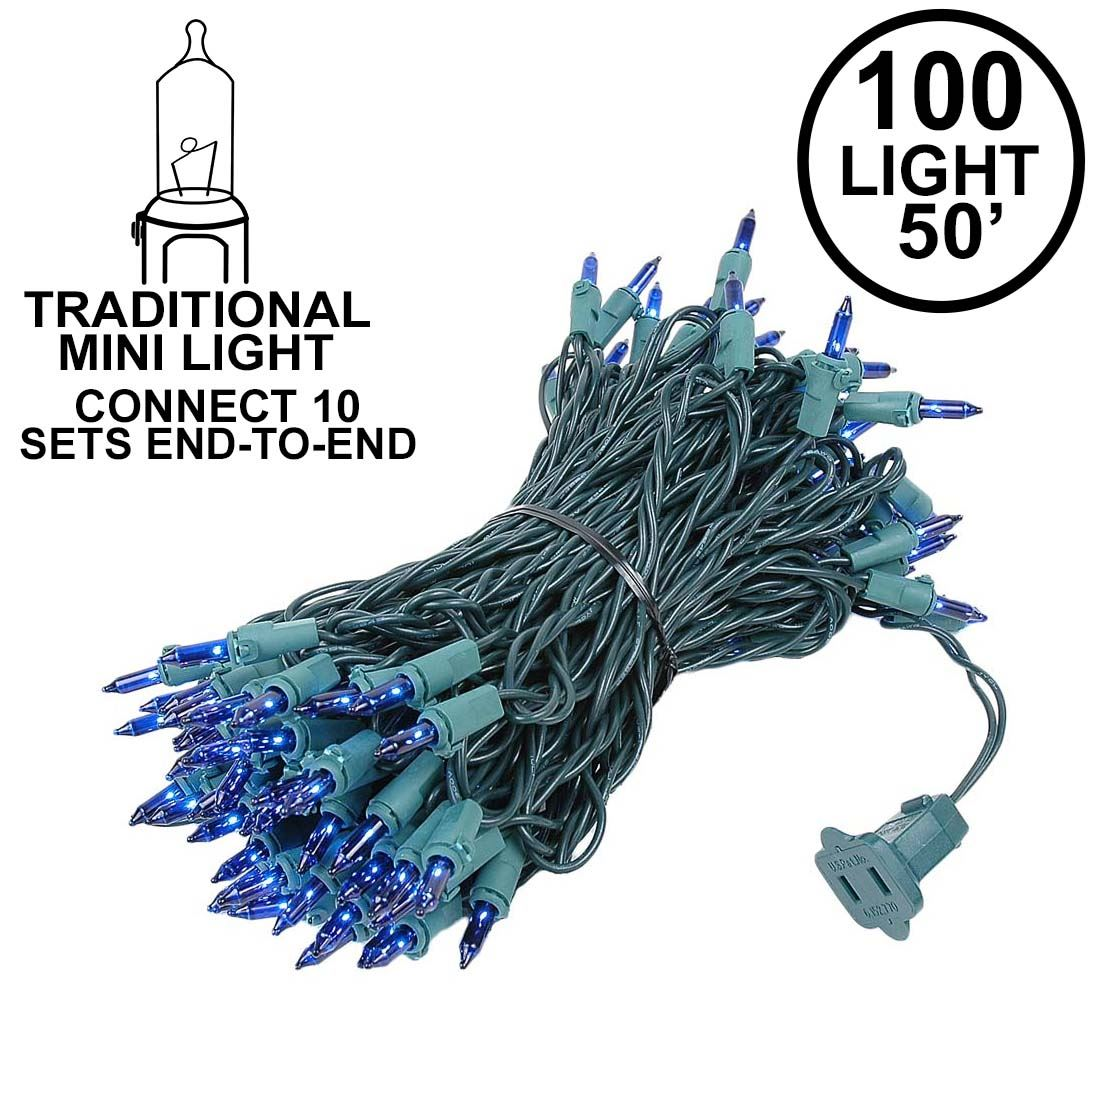 Picture of Connect 10 Blue Christmas Mini Lights 100 Light 50 Feet Long